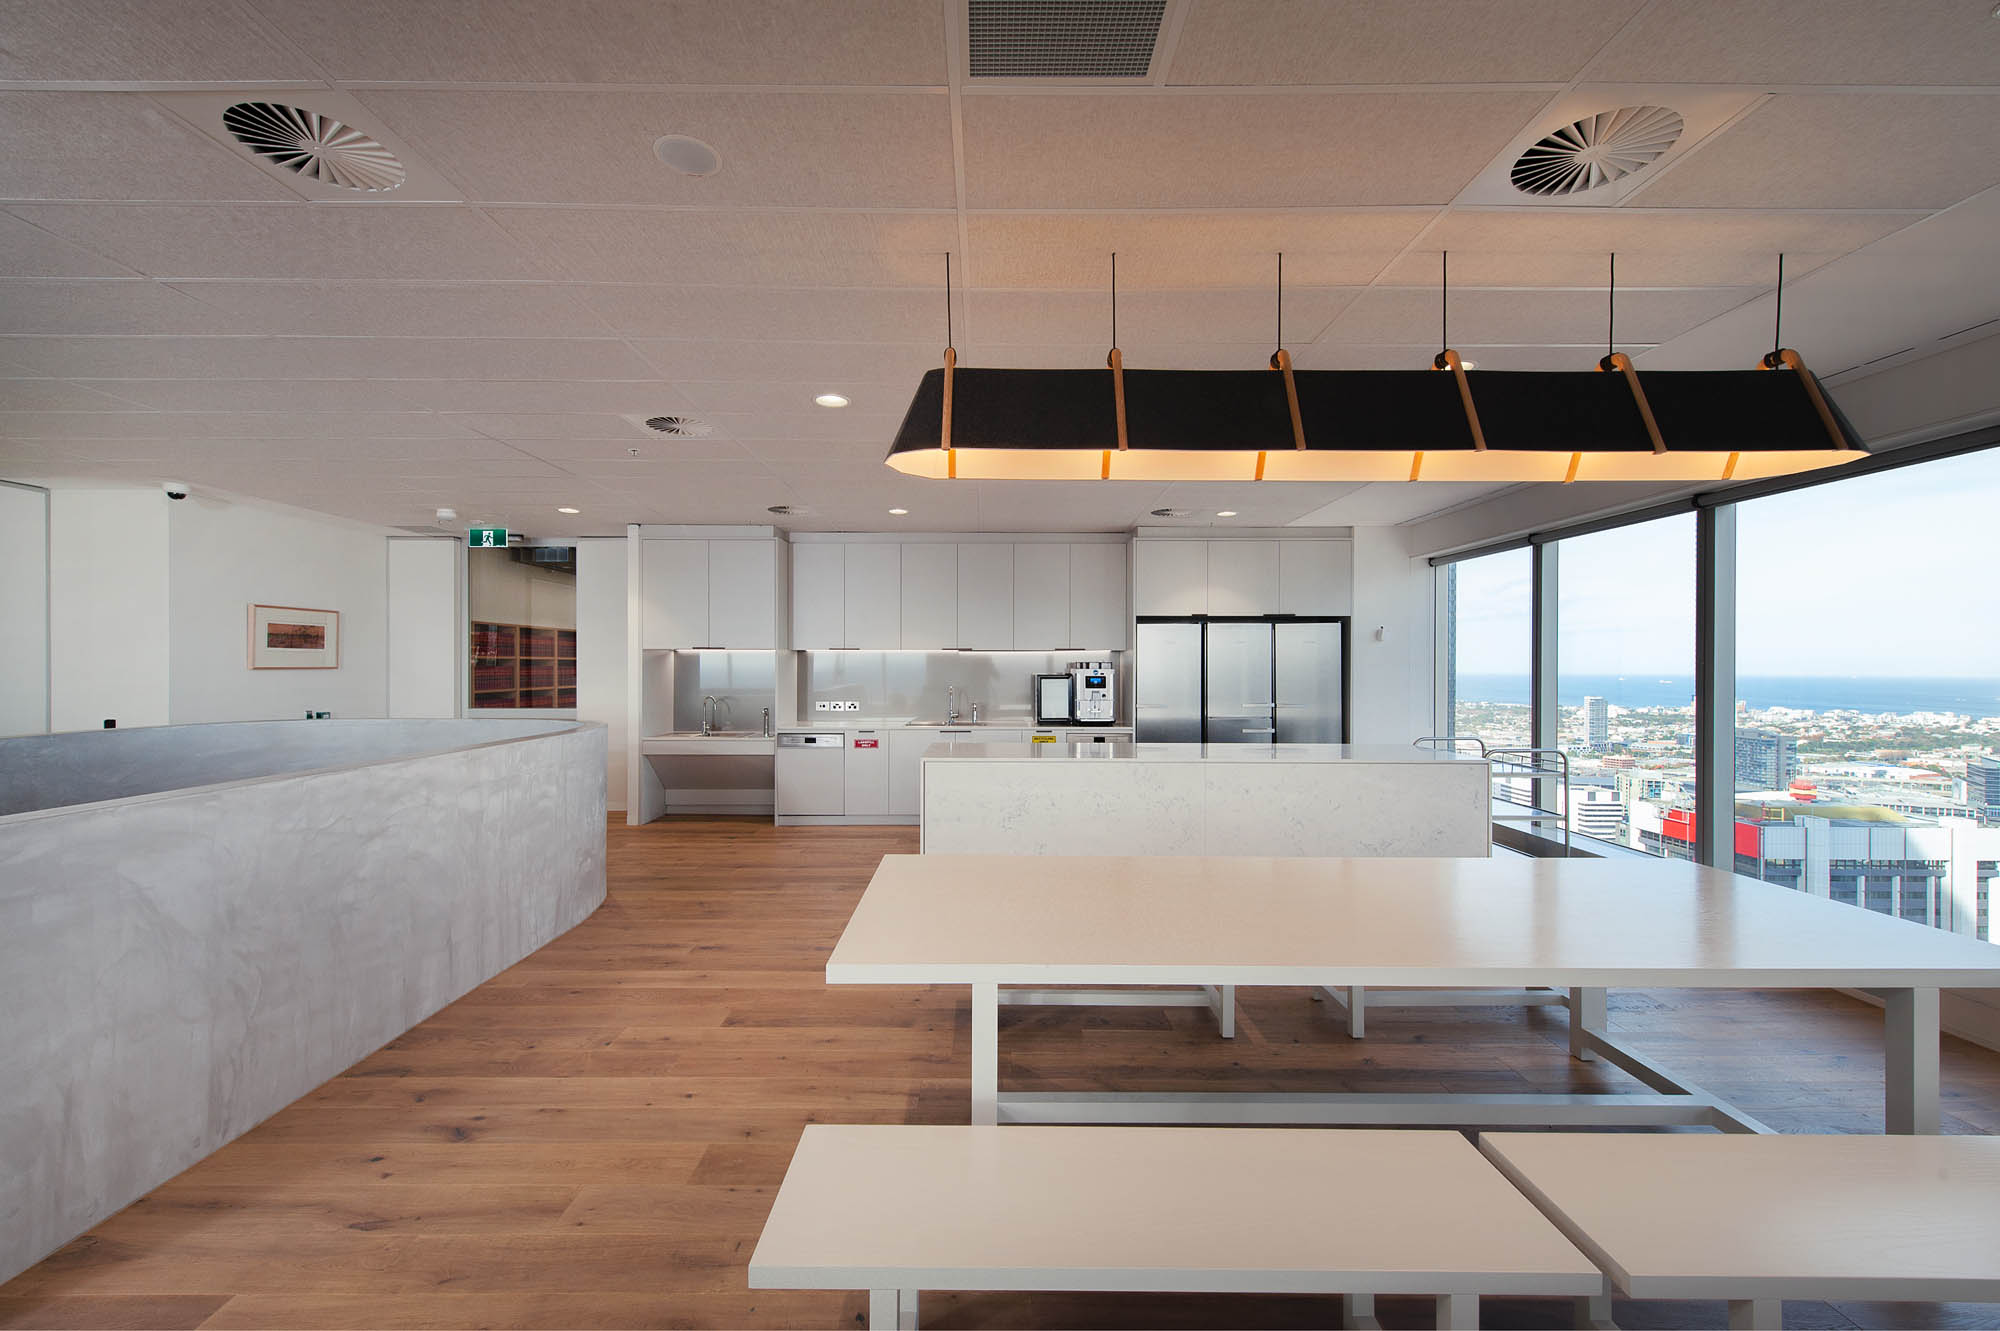 australian government solicitor melbourne office featuring breakout kitchen area